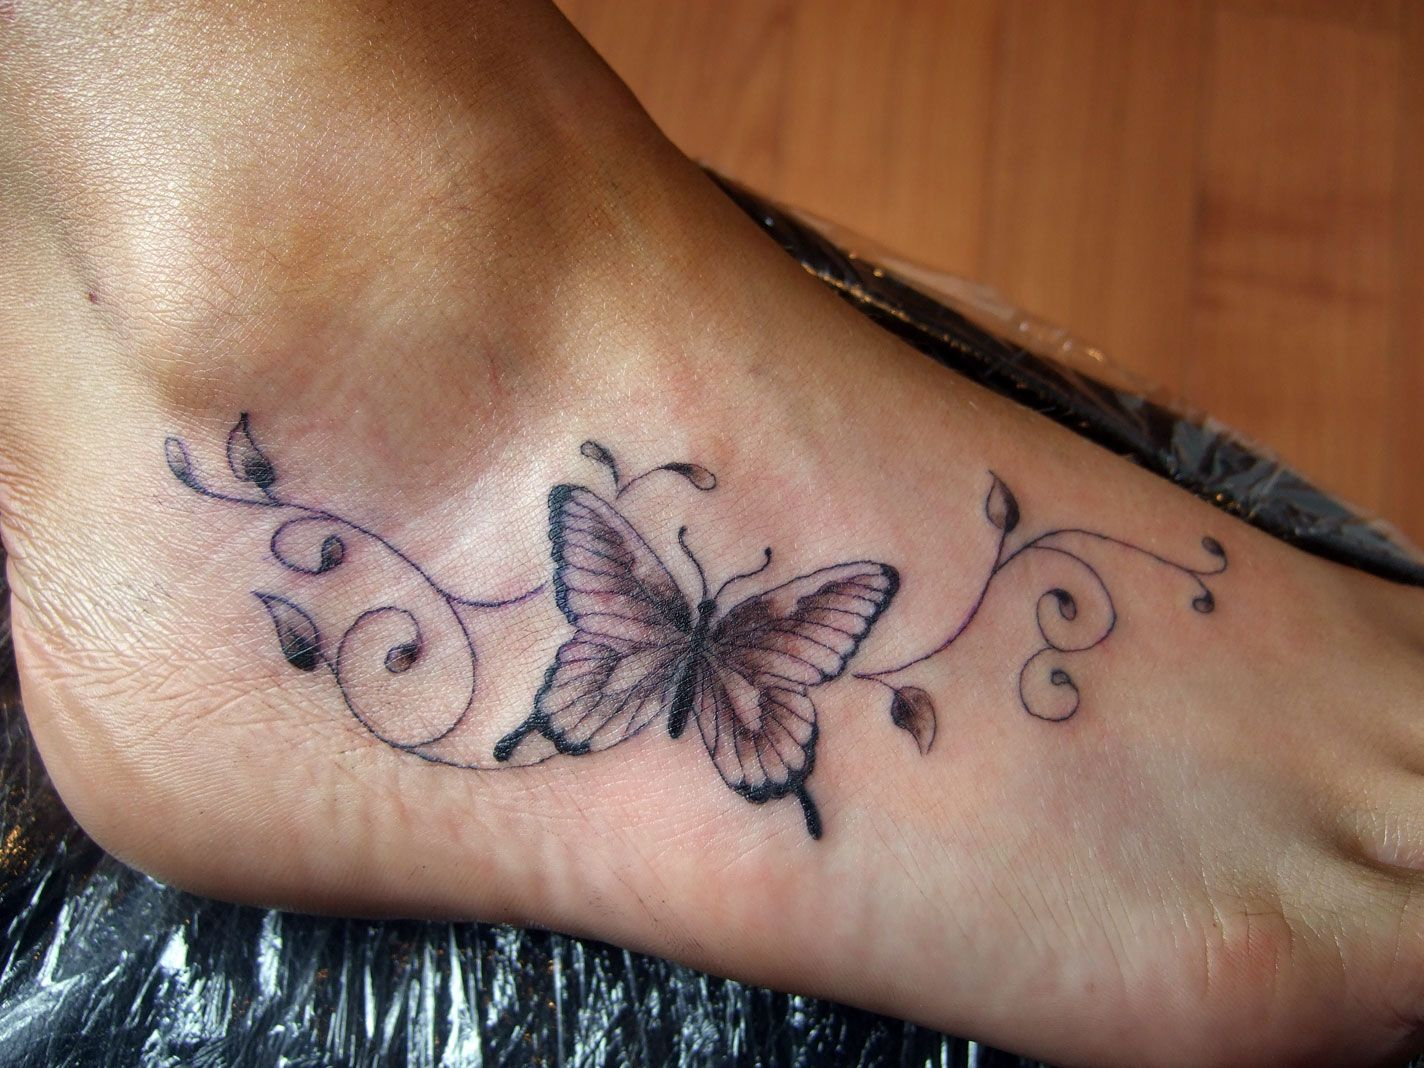 Awesome Butterfly Tattoos On Foot Design Stylendesigns in dimensions 1424 X 1068